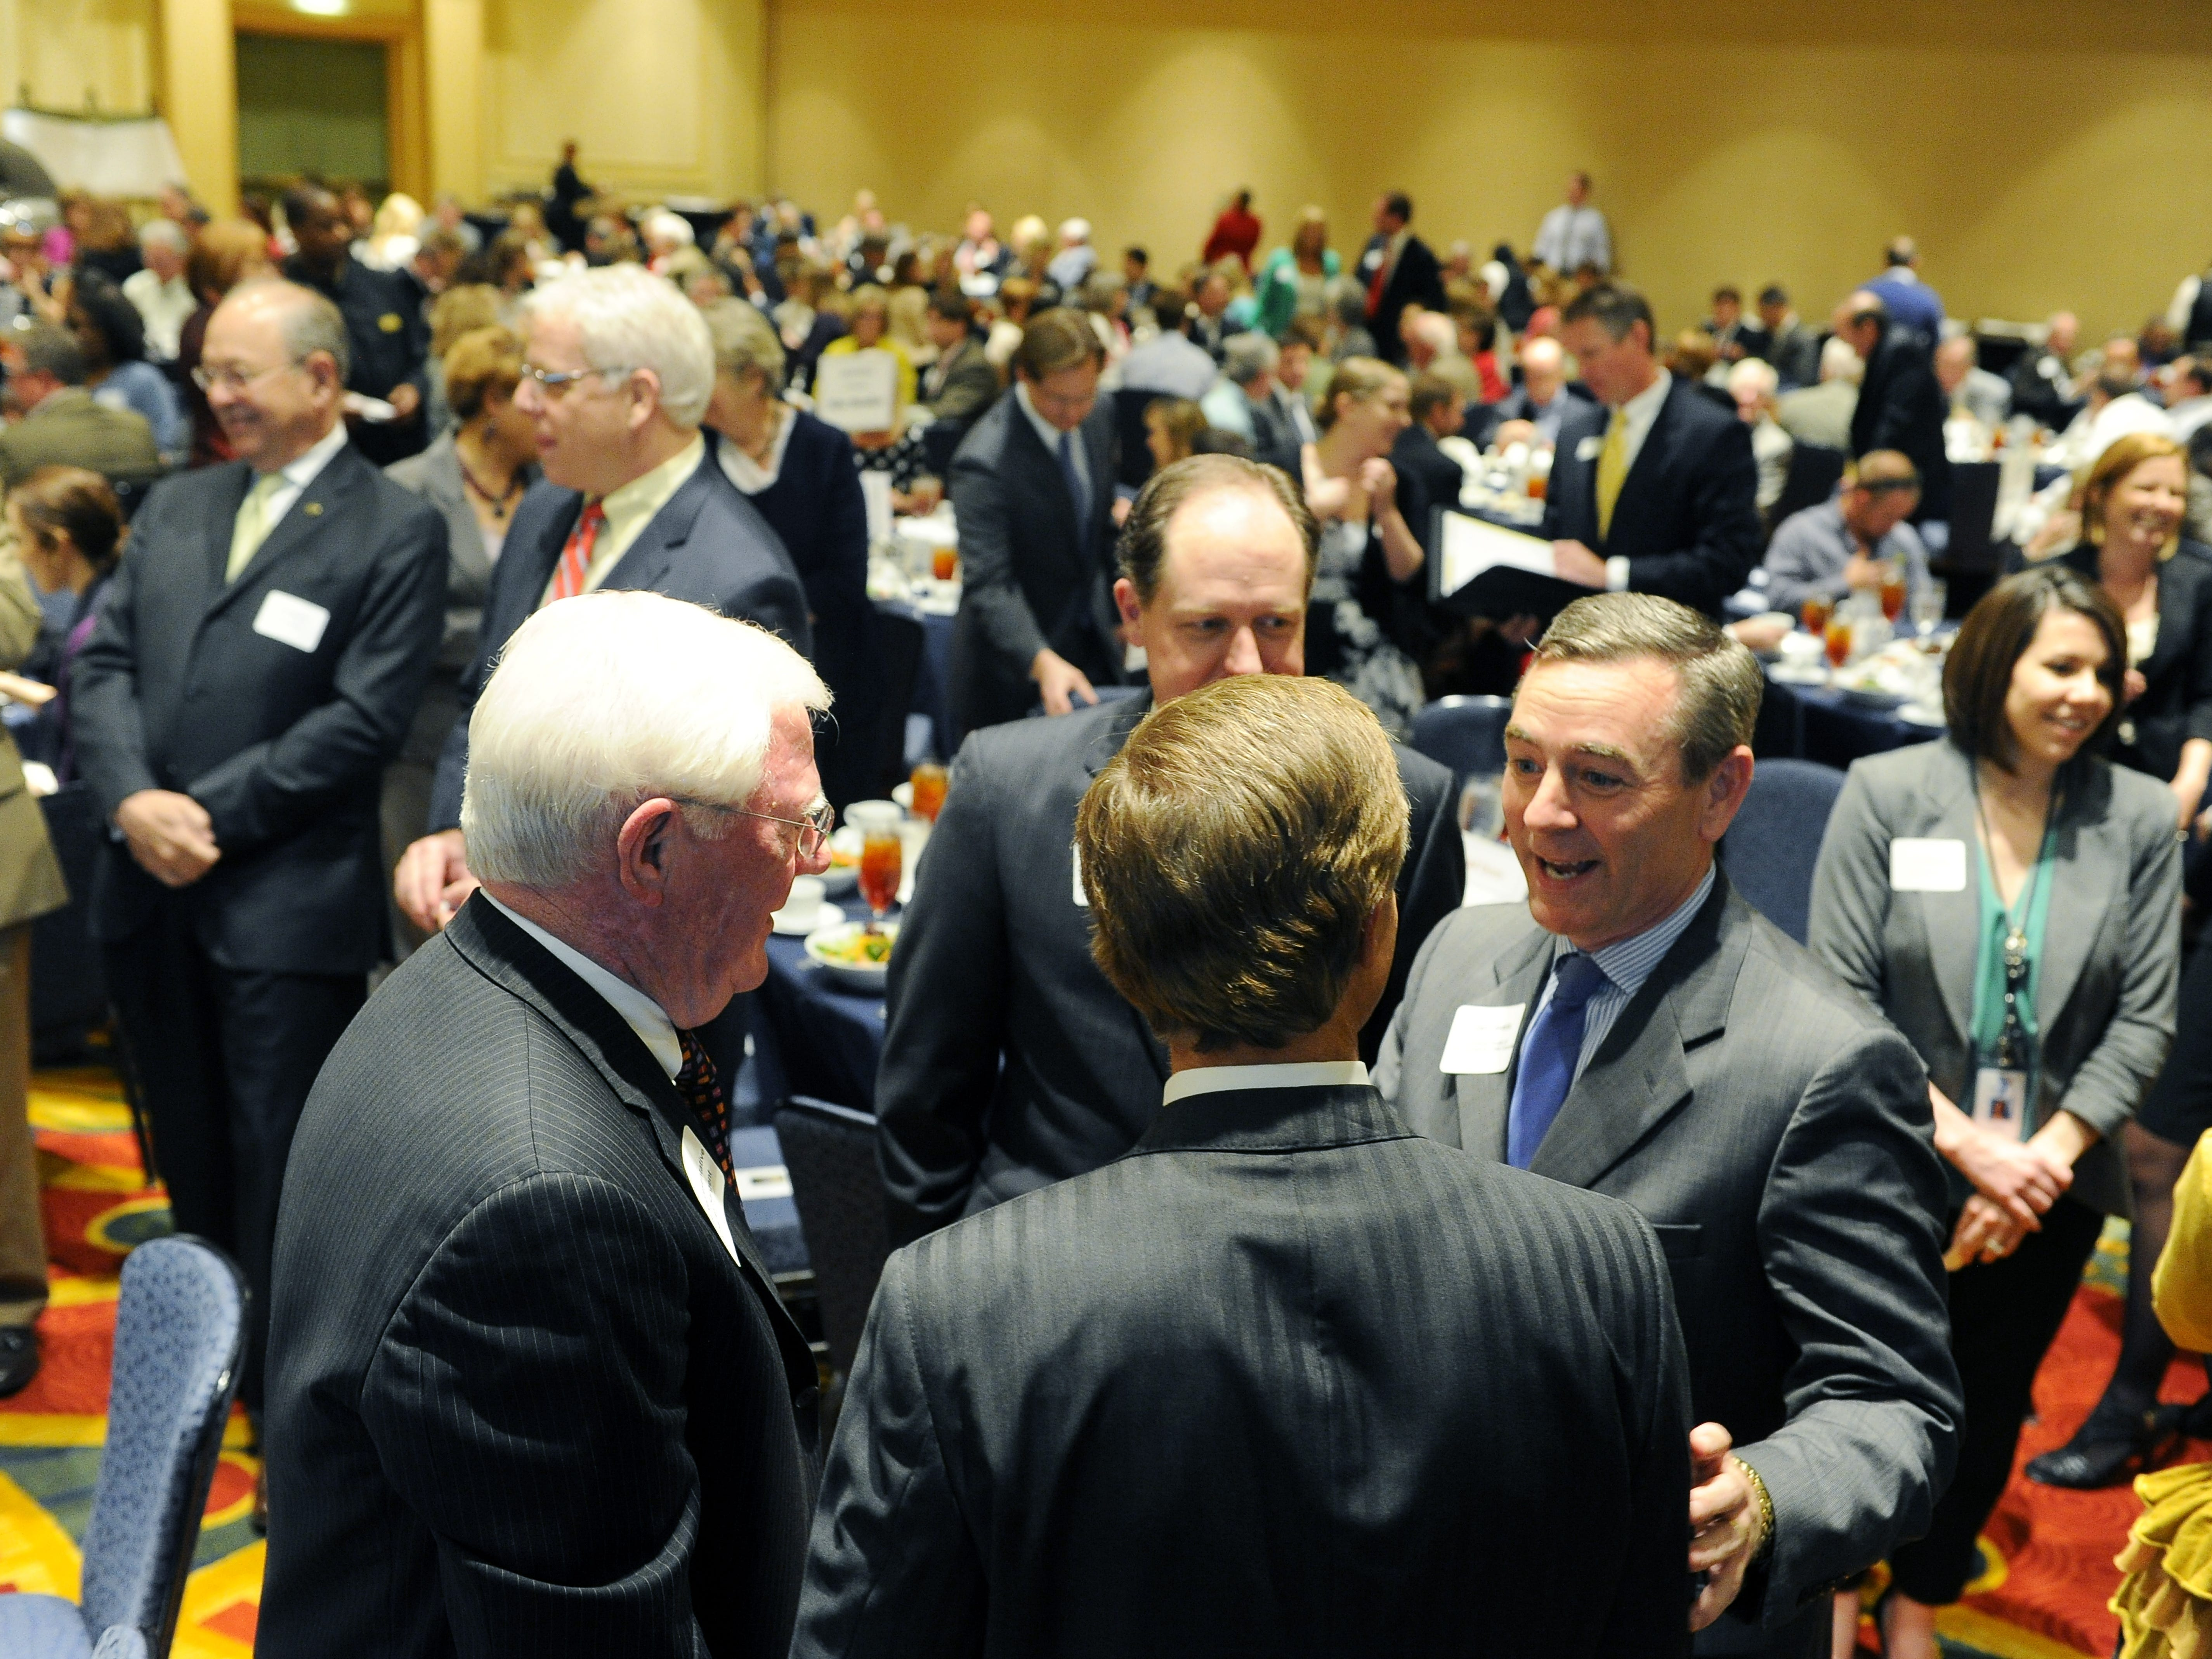 Gov. Bill Haslam, back to camera, talks with Rep. Charles Sargent, left, Rep. Jack Johnson, center, and Rep. Glen Casada during a Williamson County Chamber of Commerce meeting in Franklin on May 13, 2013.